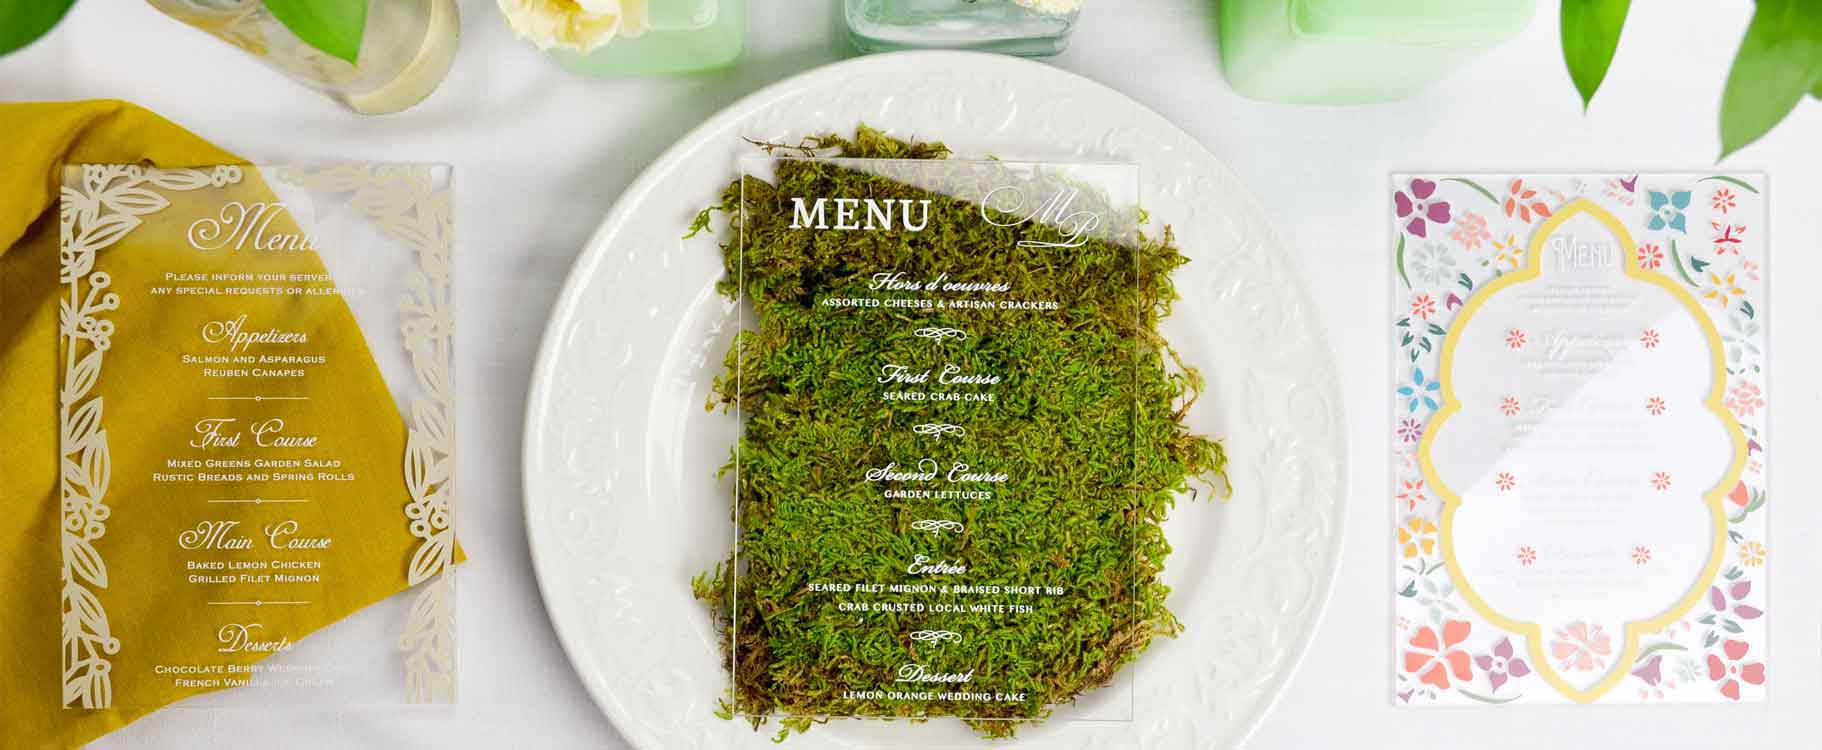 Acrylic Wedding Menus